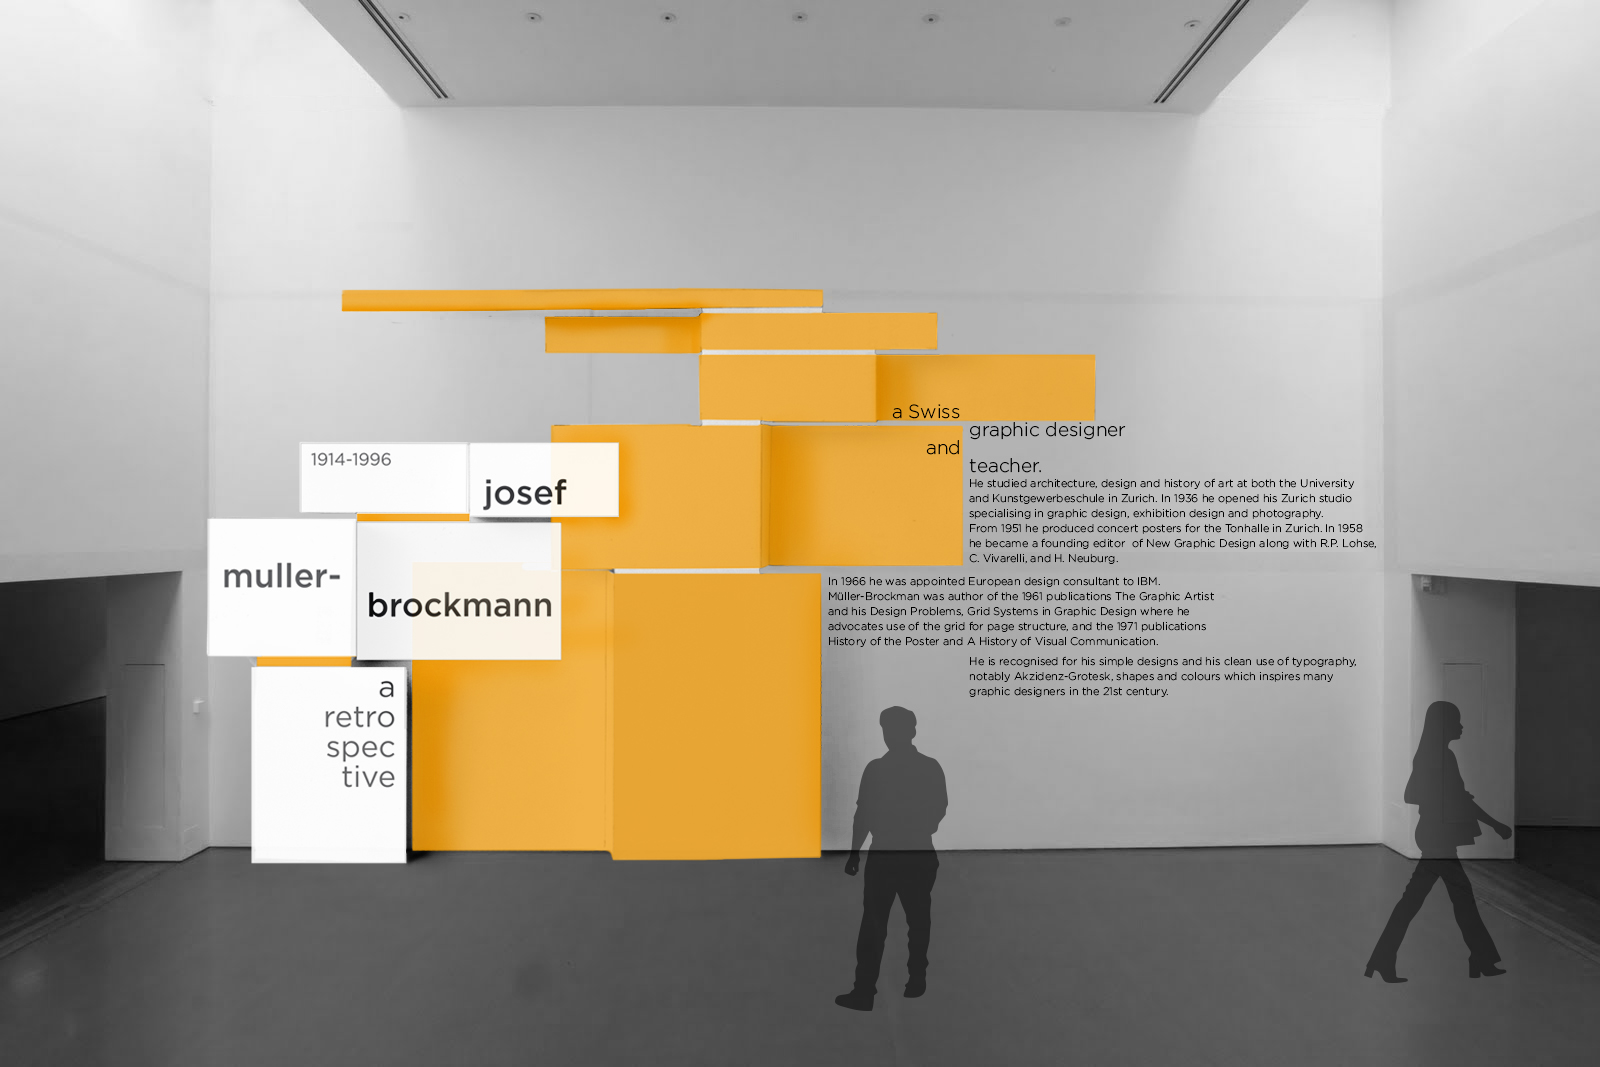 Gallery_Space_Color_Model_Merged Layers_Shadow.jpg